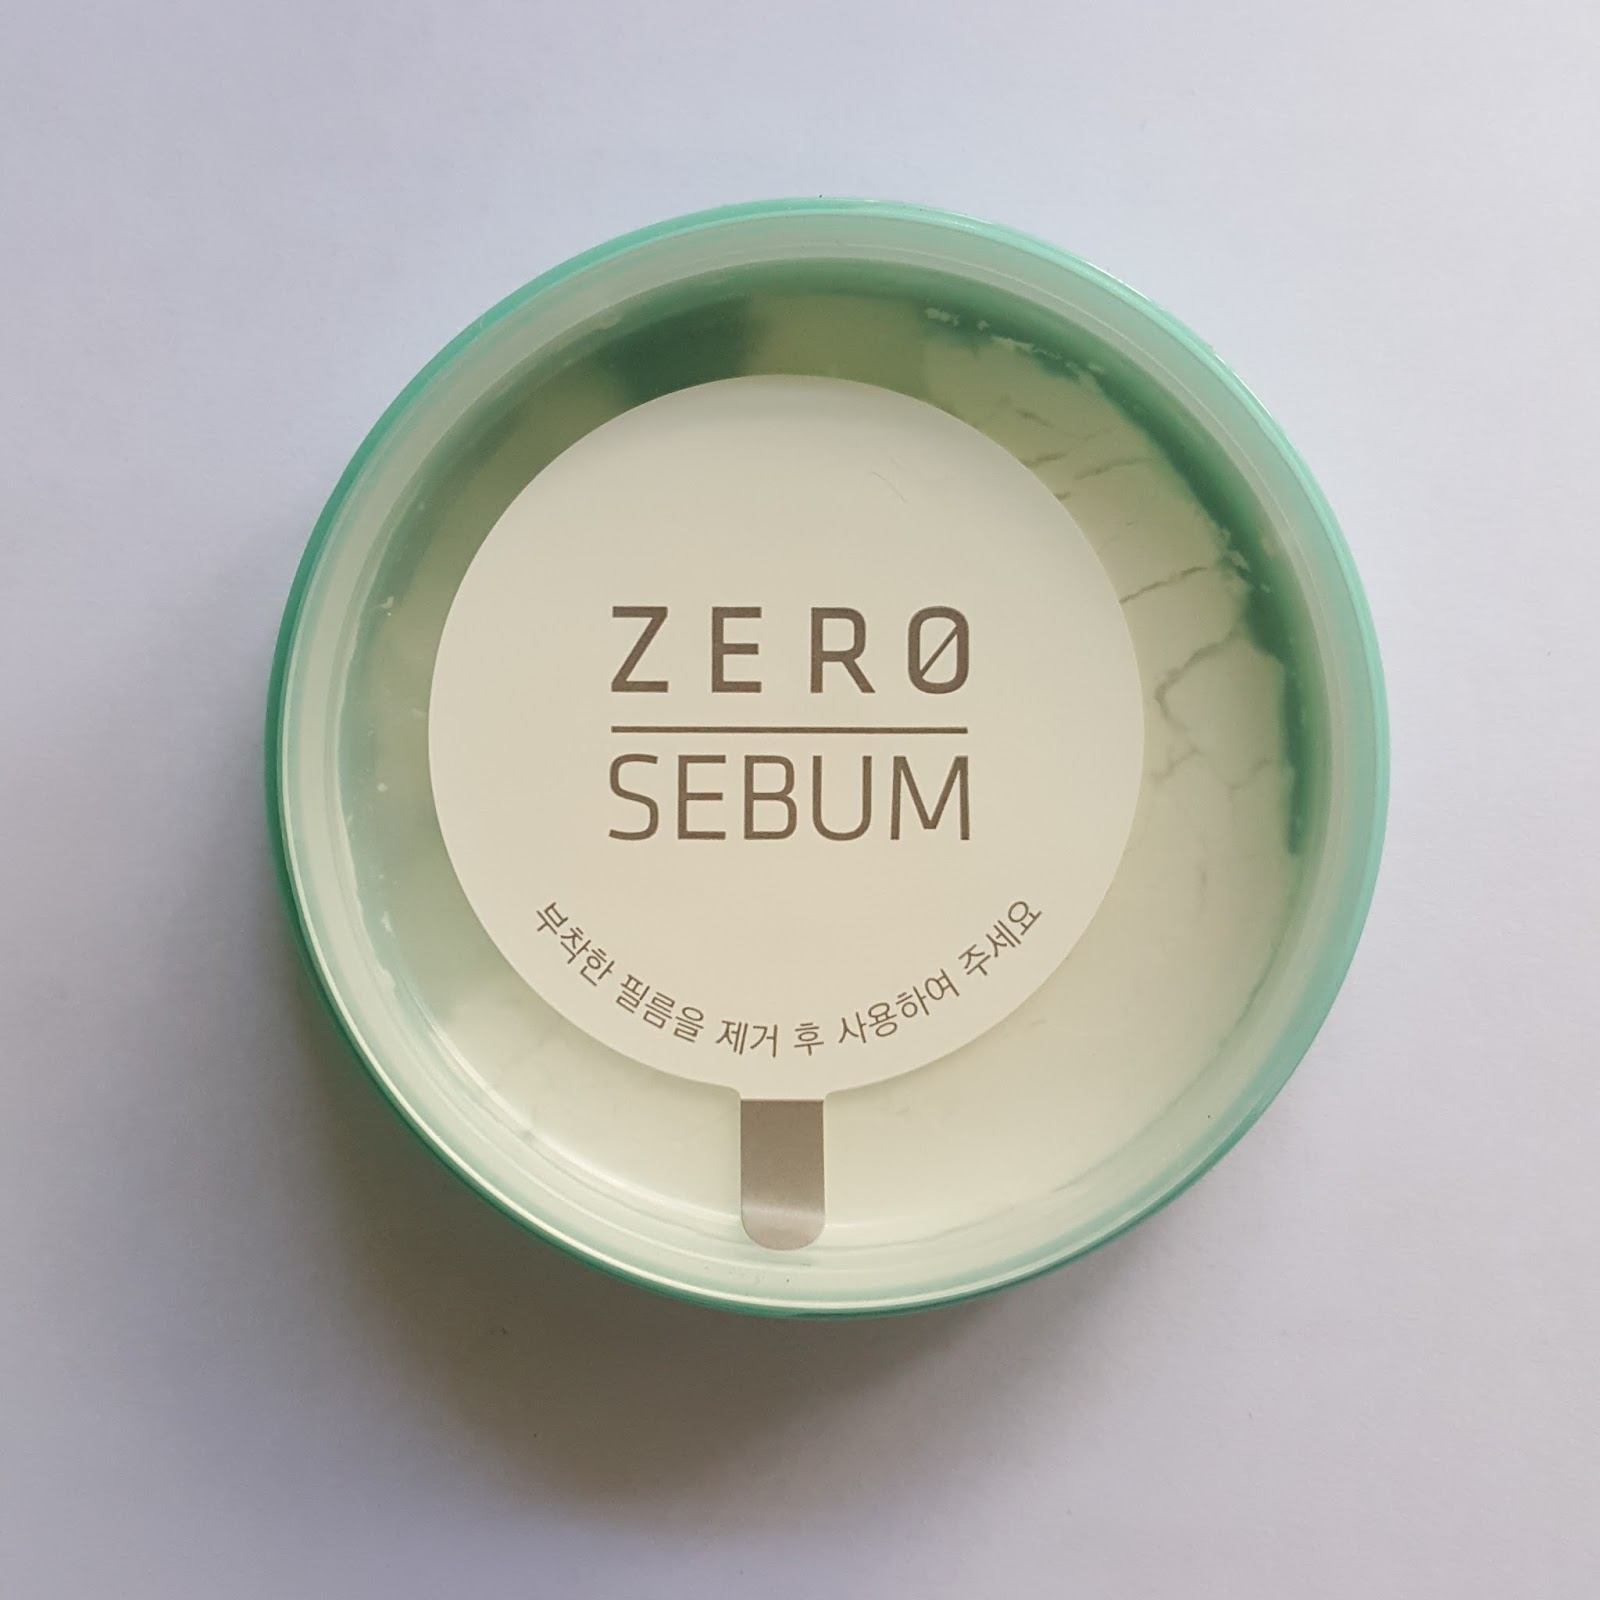 Etude House Zero Sebum Line Drying Powder All Day Matte Gel The Comes In A 65ml Tube Ingredients Whole